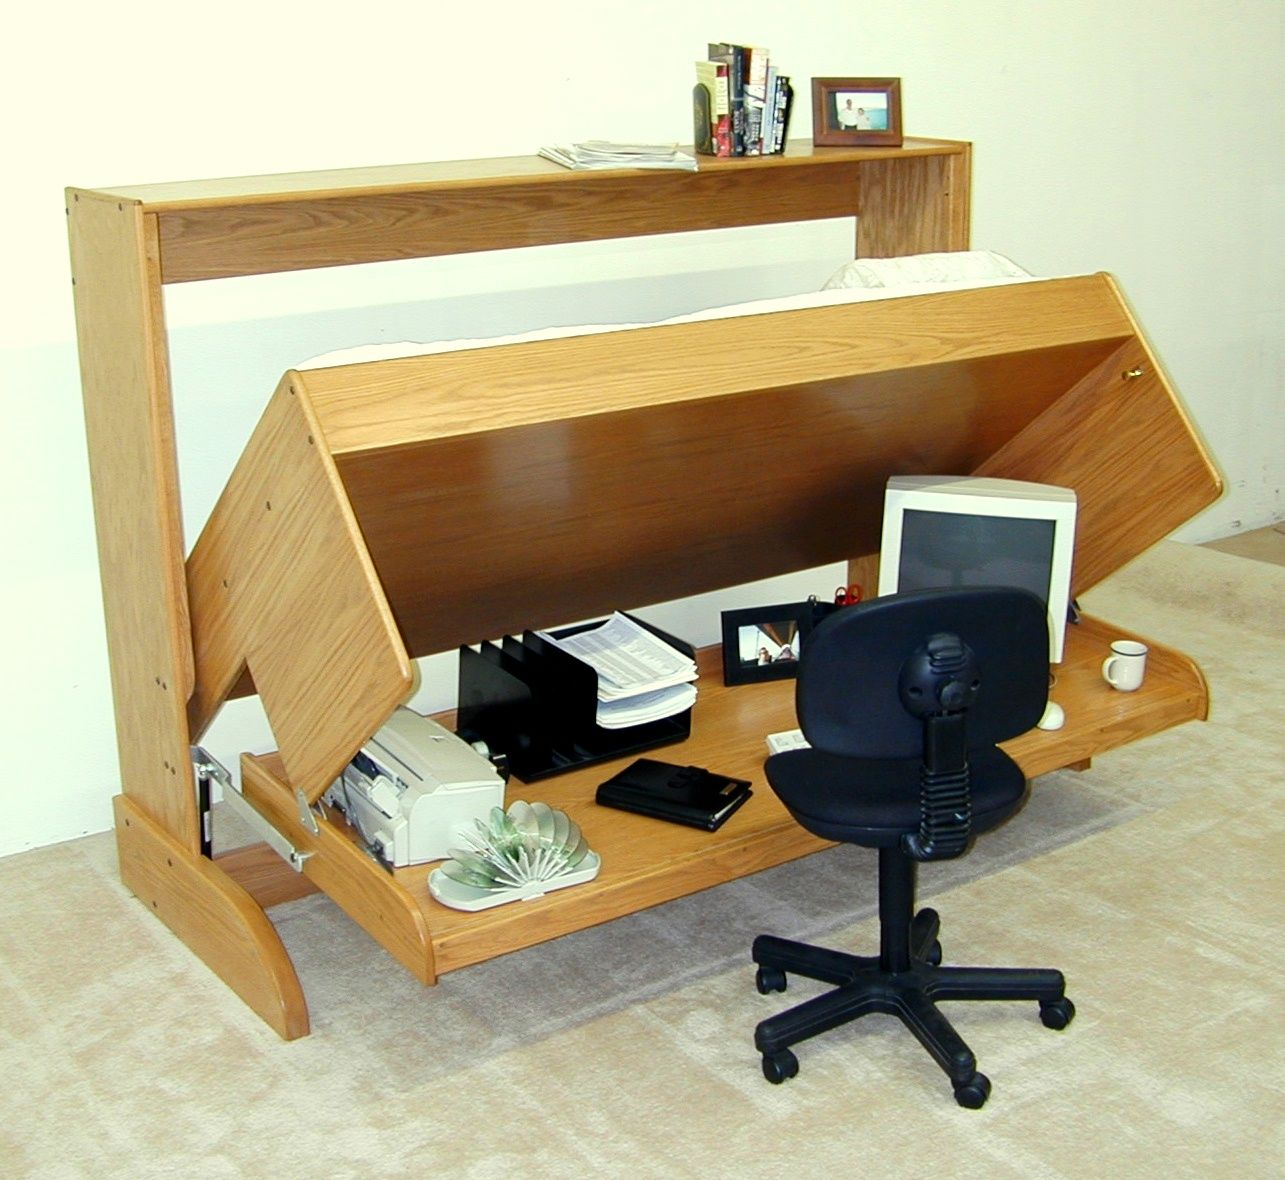 There are some amazing murphy bed/desk options. Google